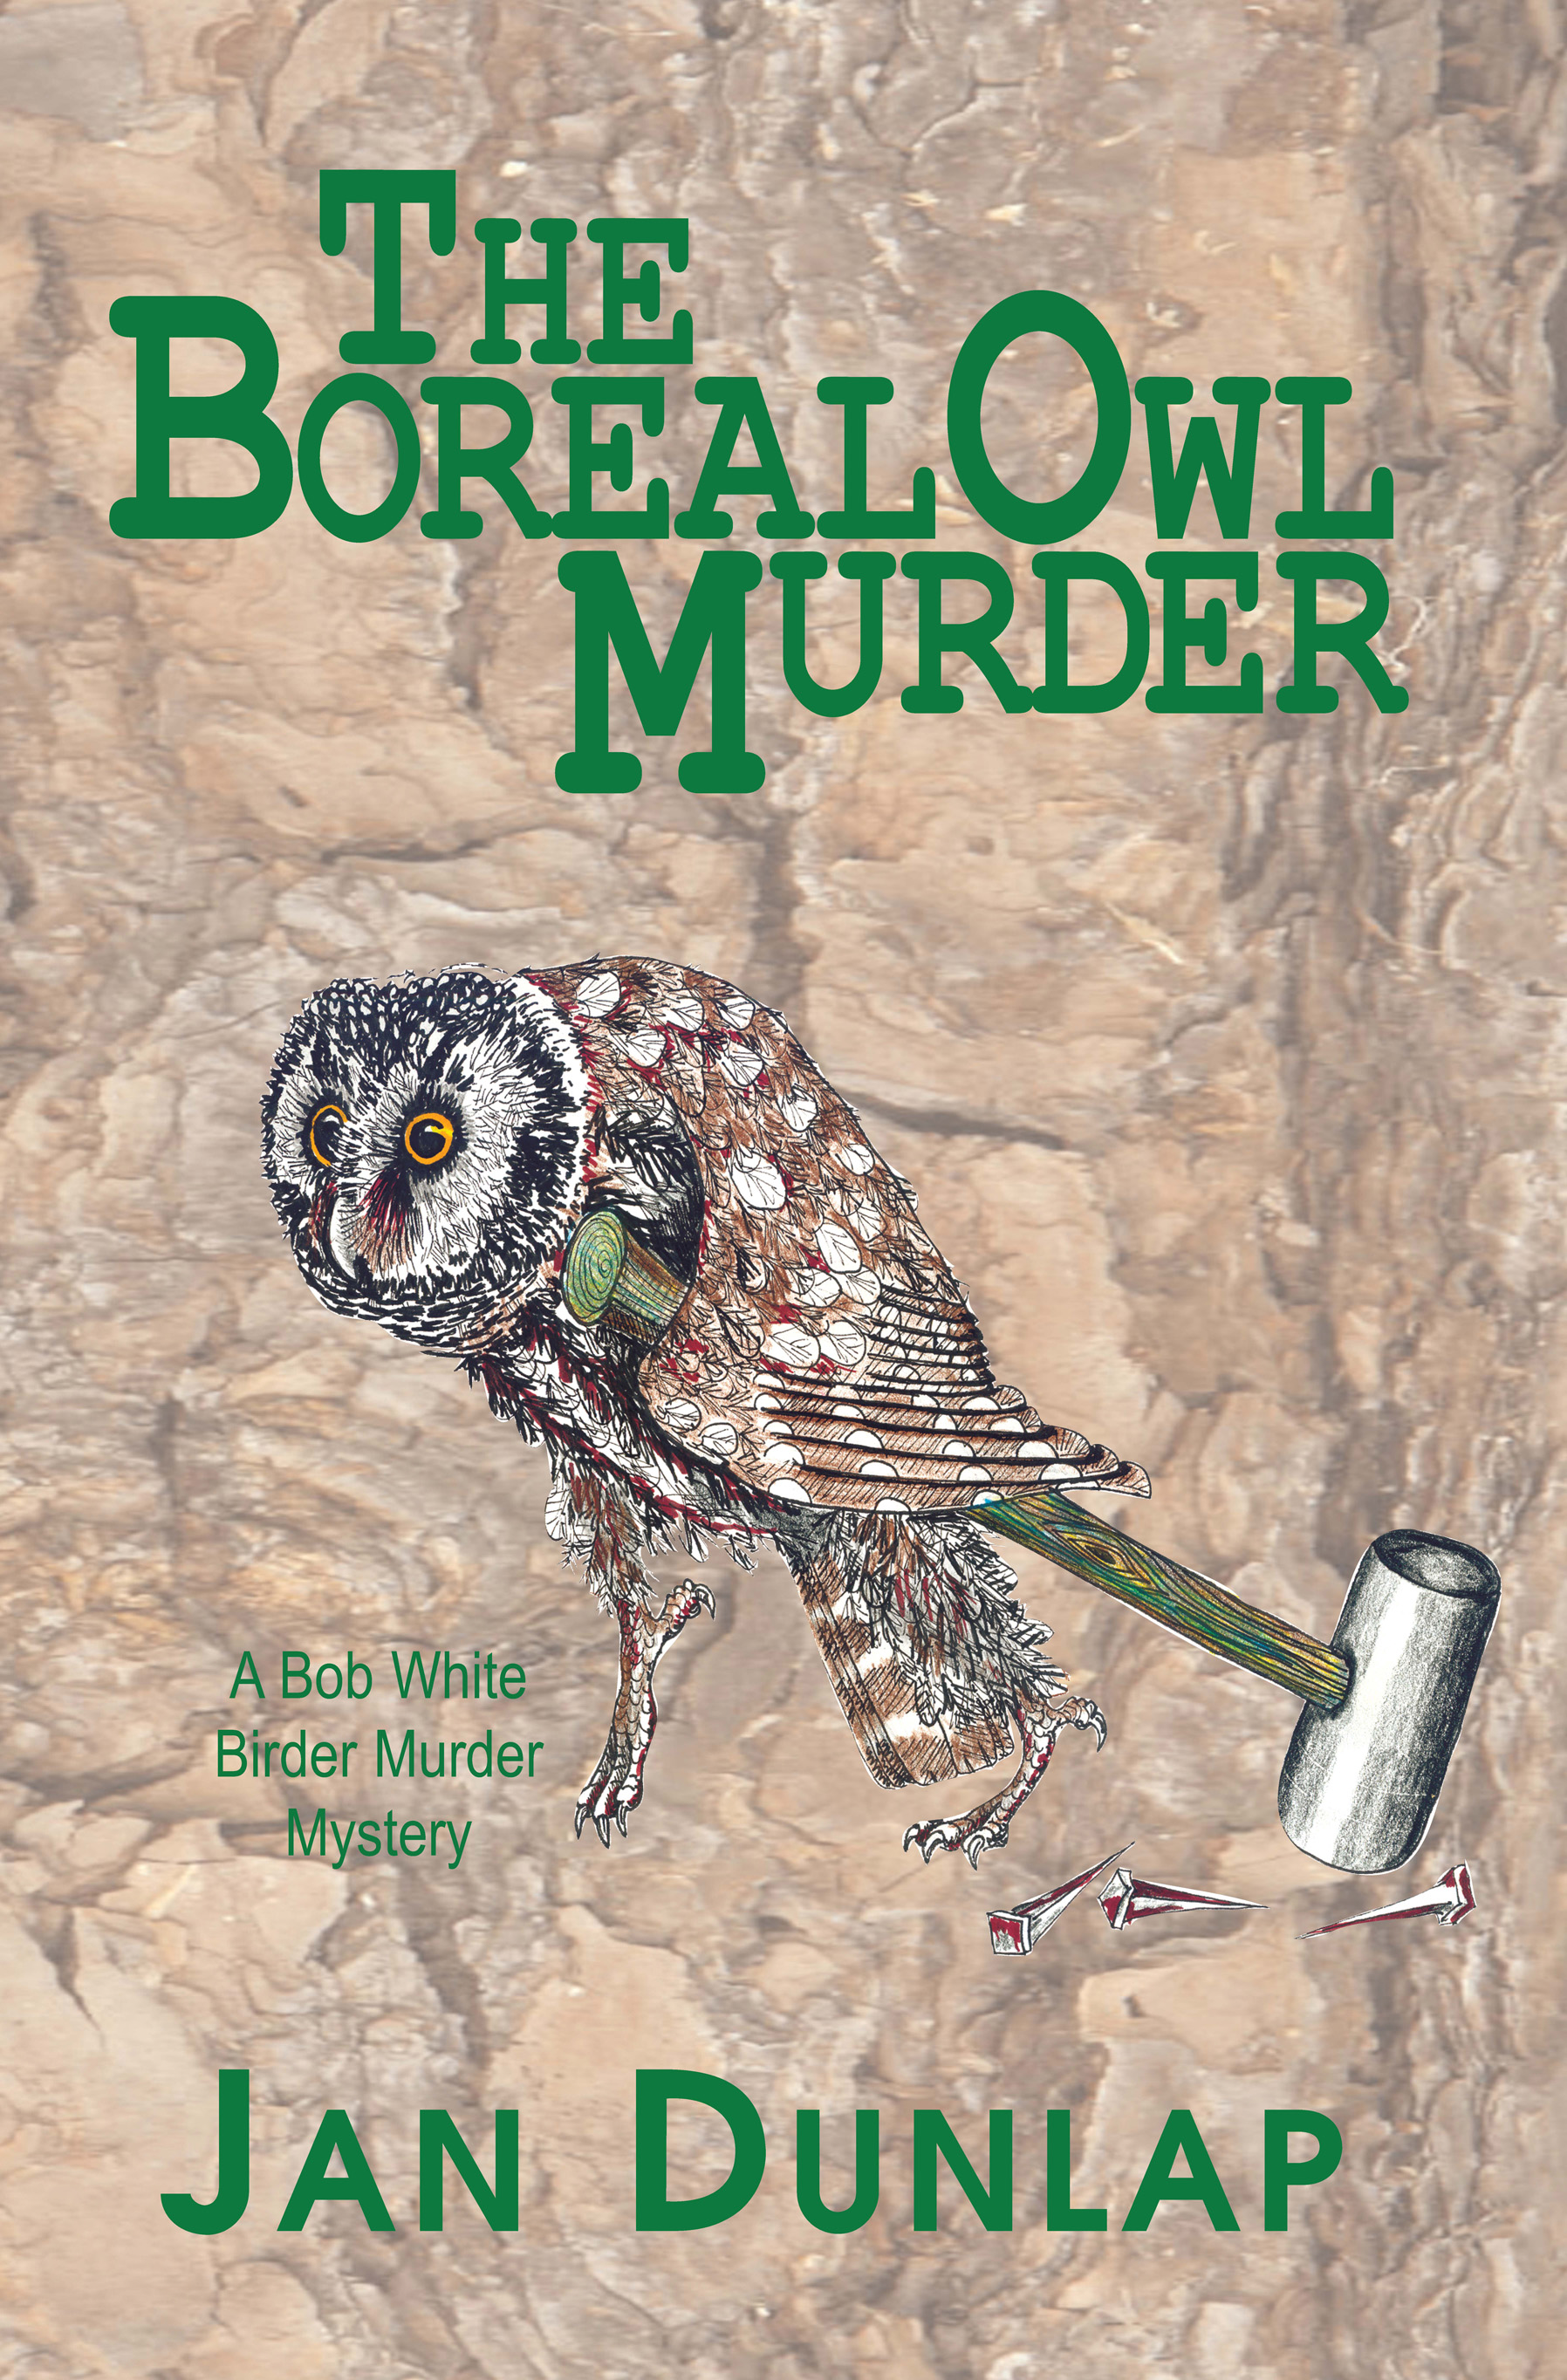 The Boreal Owl Murder